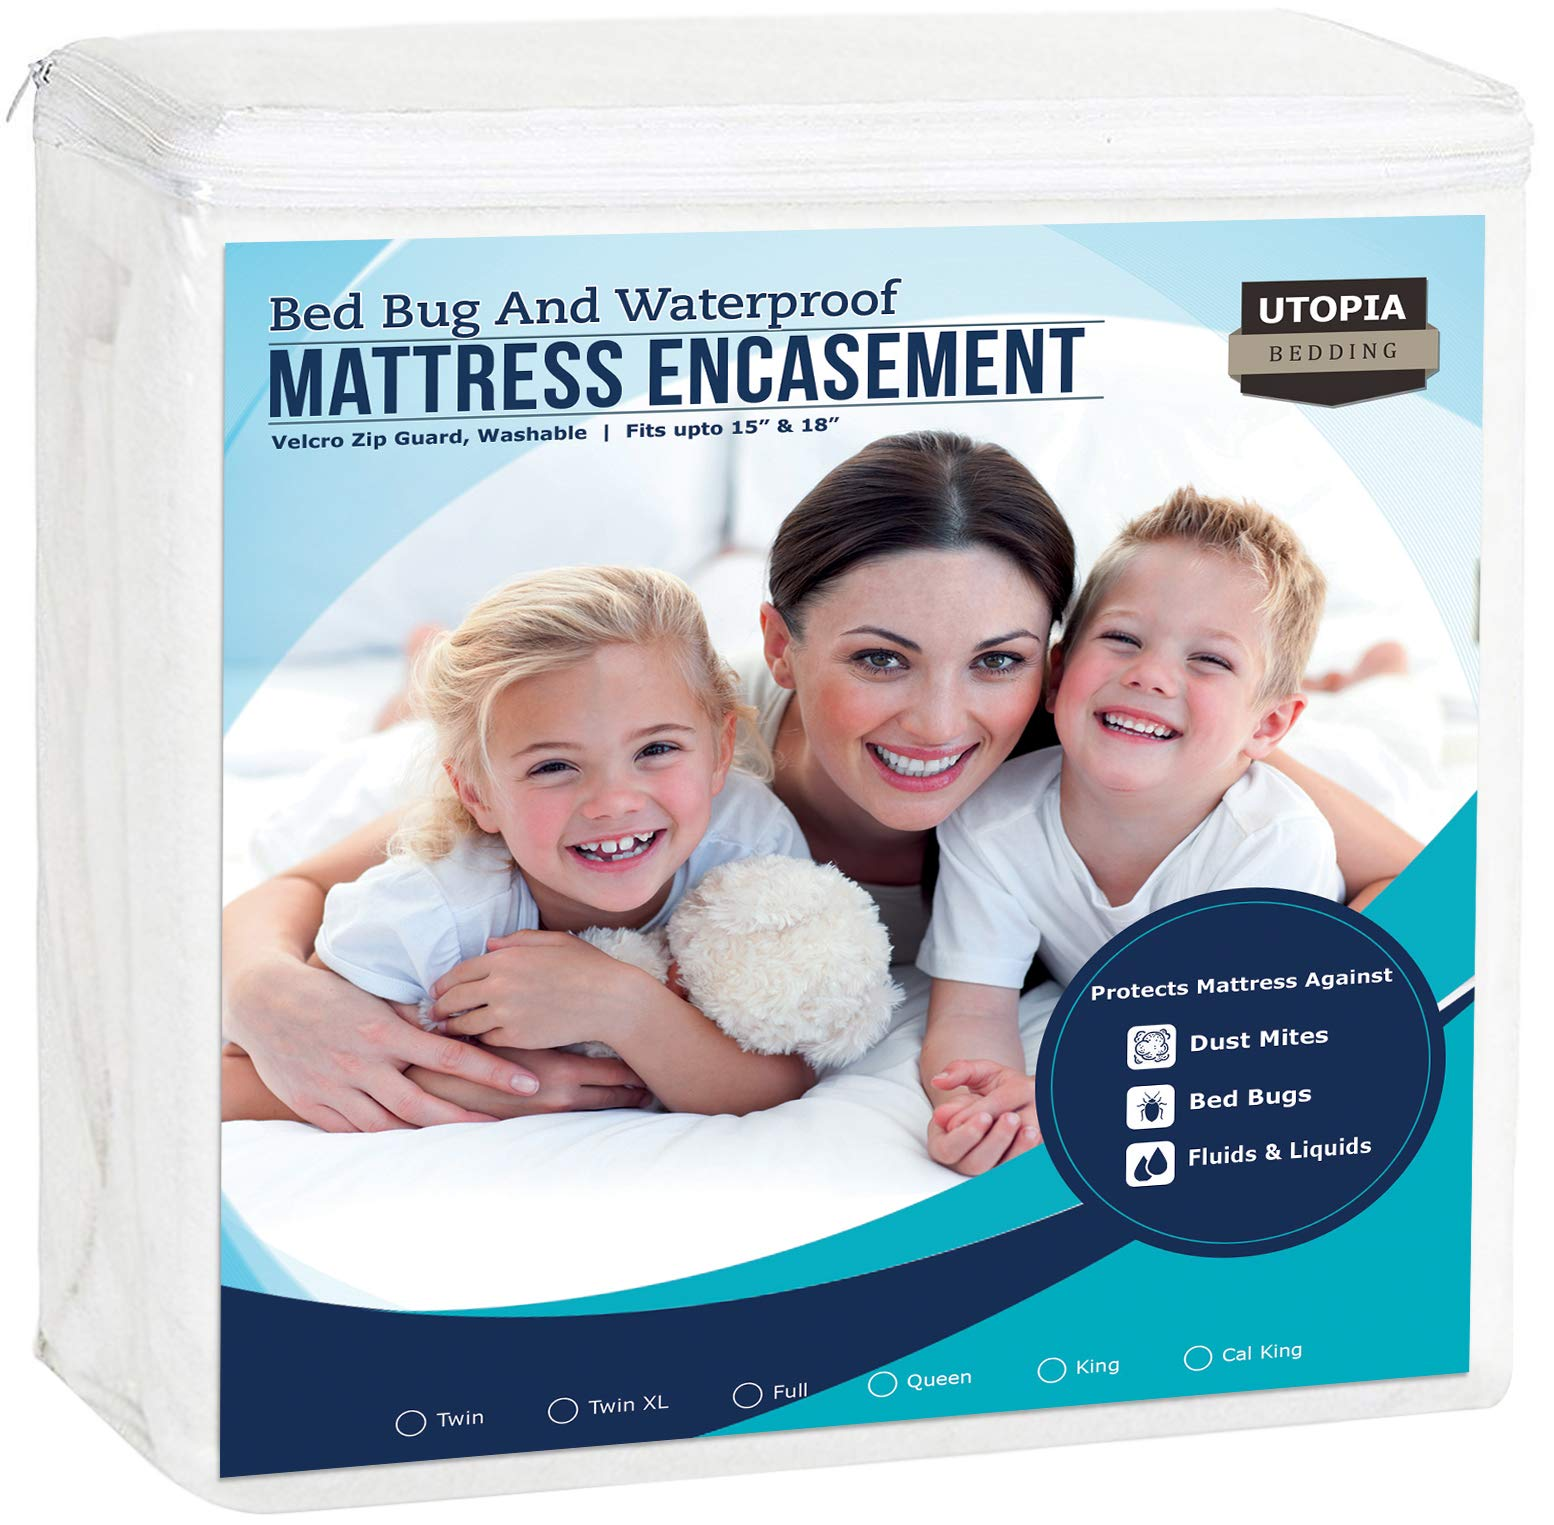 Utopia Bedding Zippered Mattress Encasement - Waterproof Mattress Protector (Full) product image